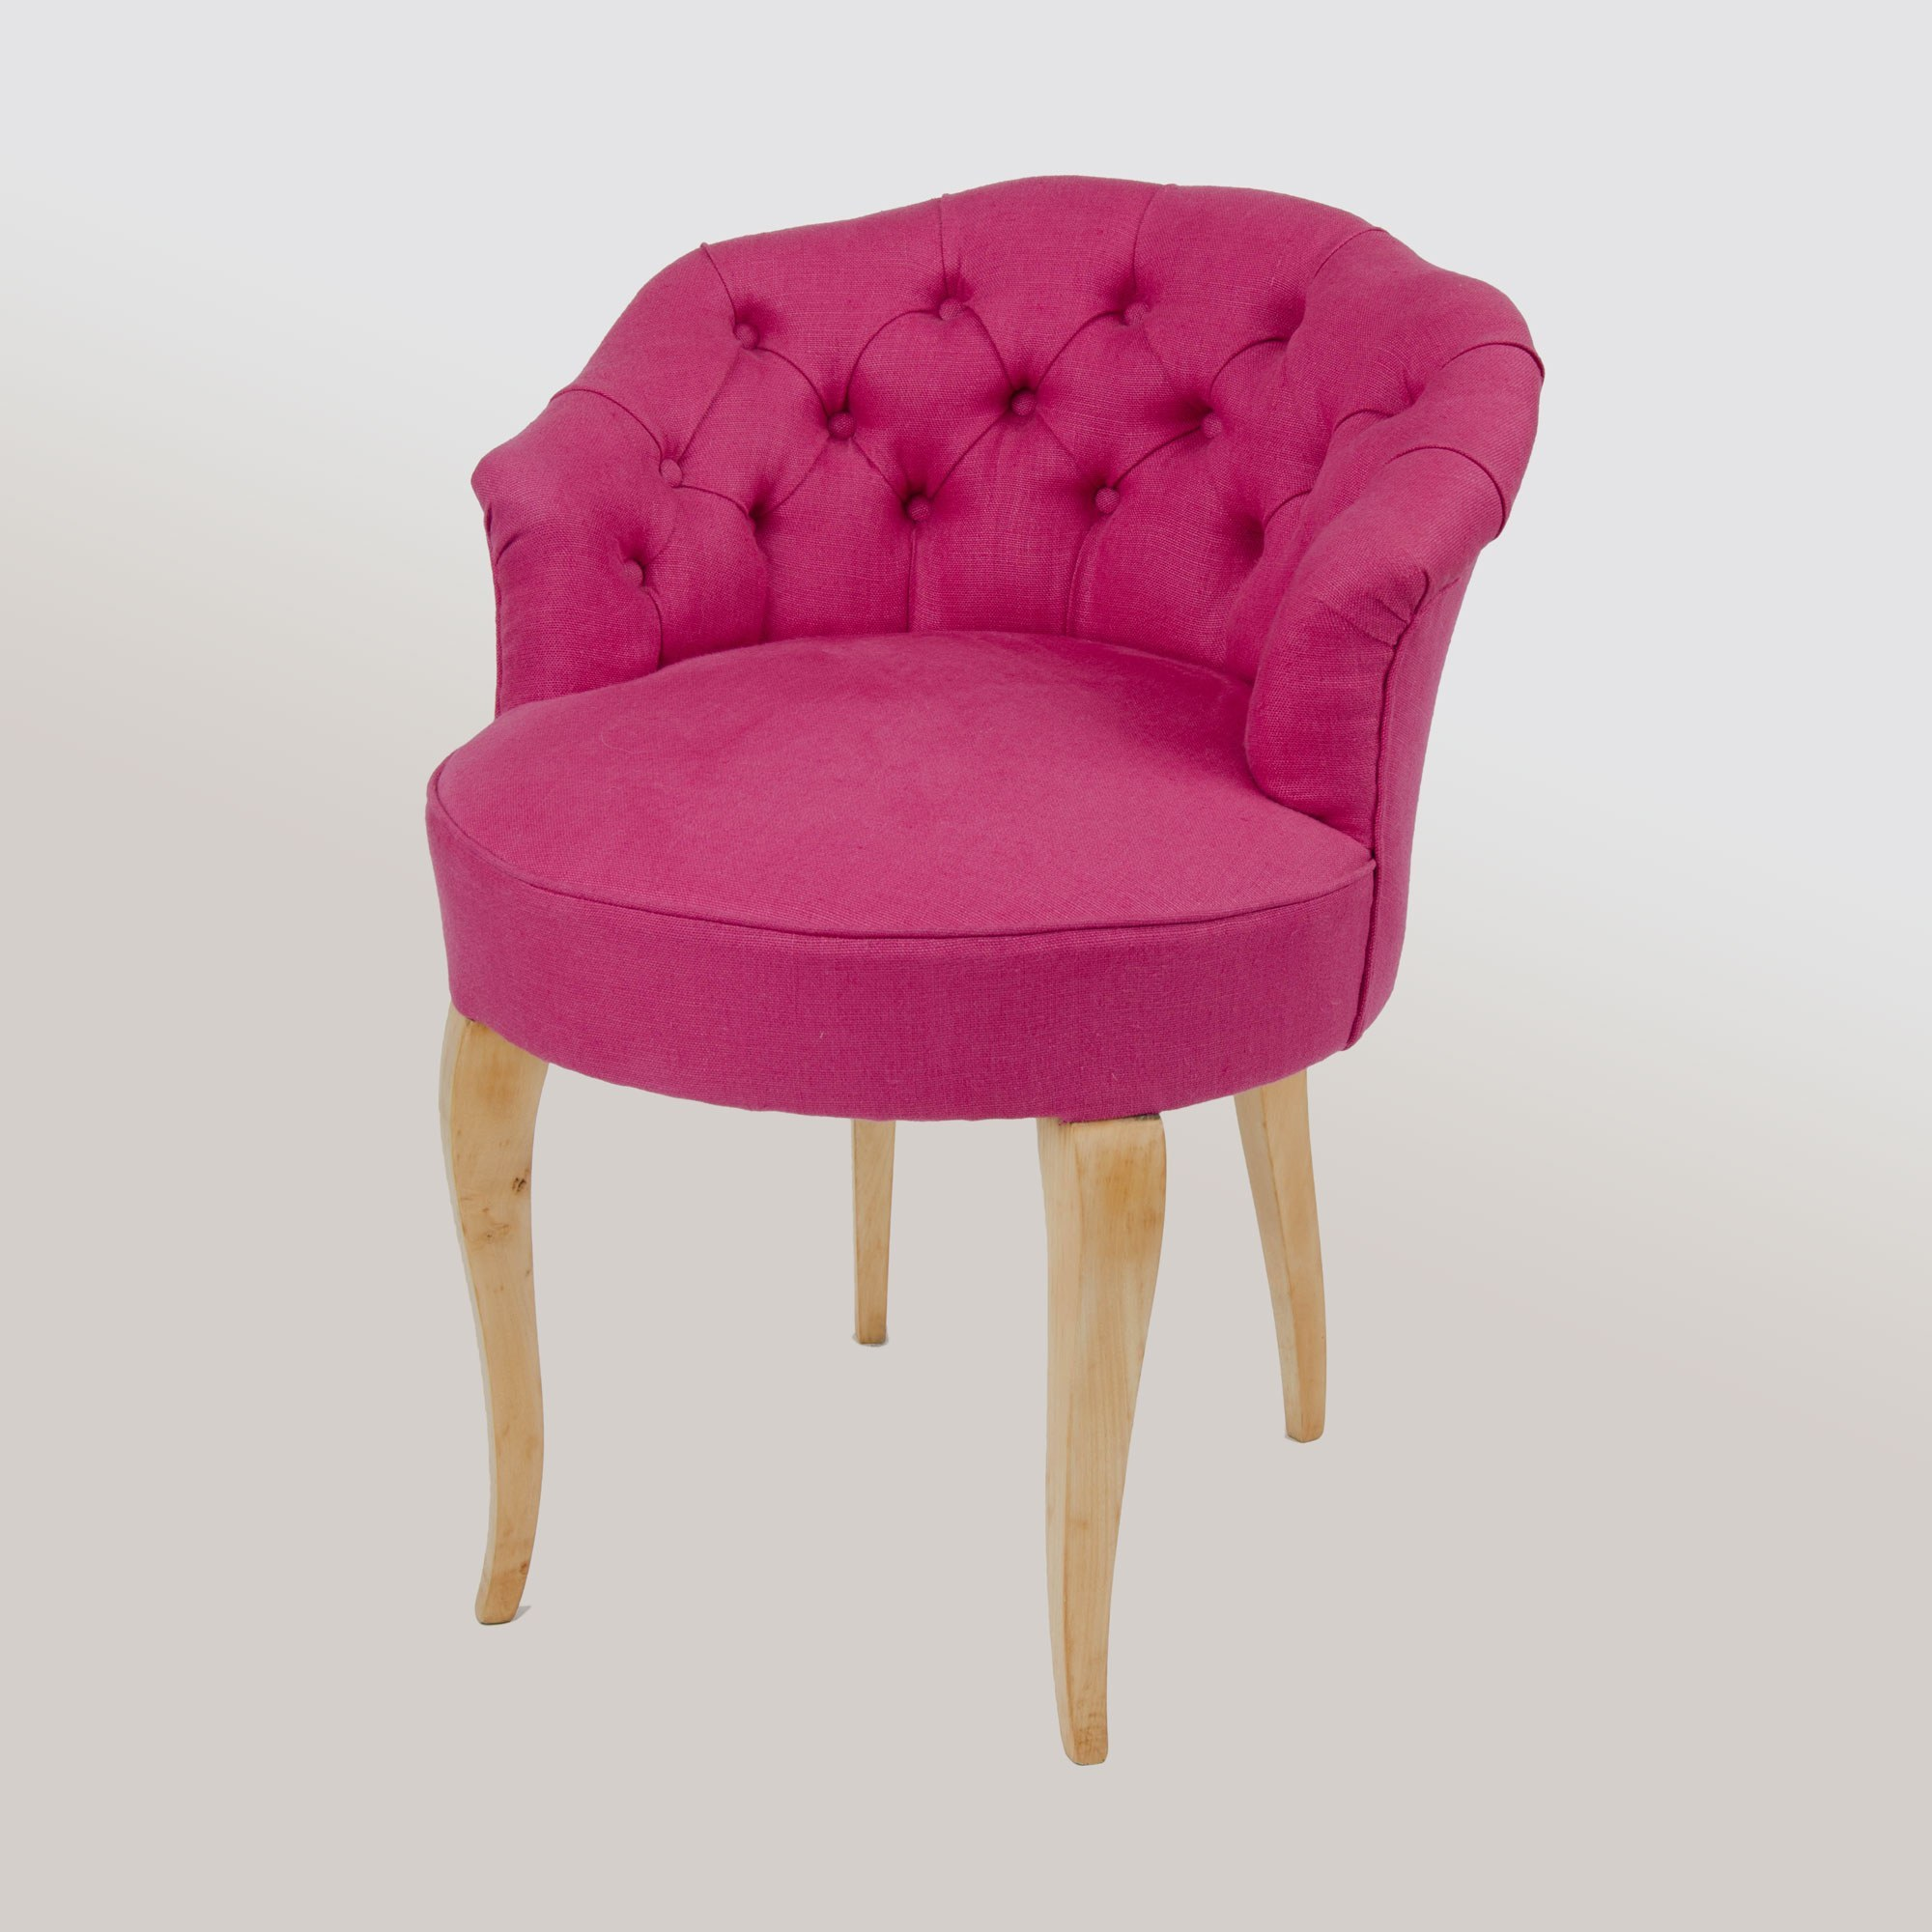 Valerie Wade Fs371 Pink Button Back Upholstered Seat 01